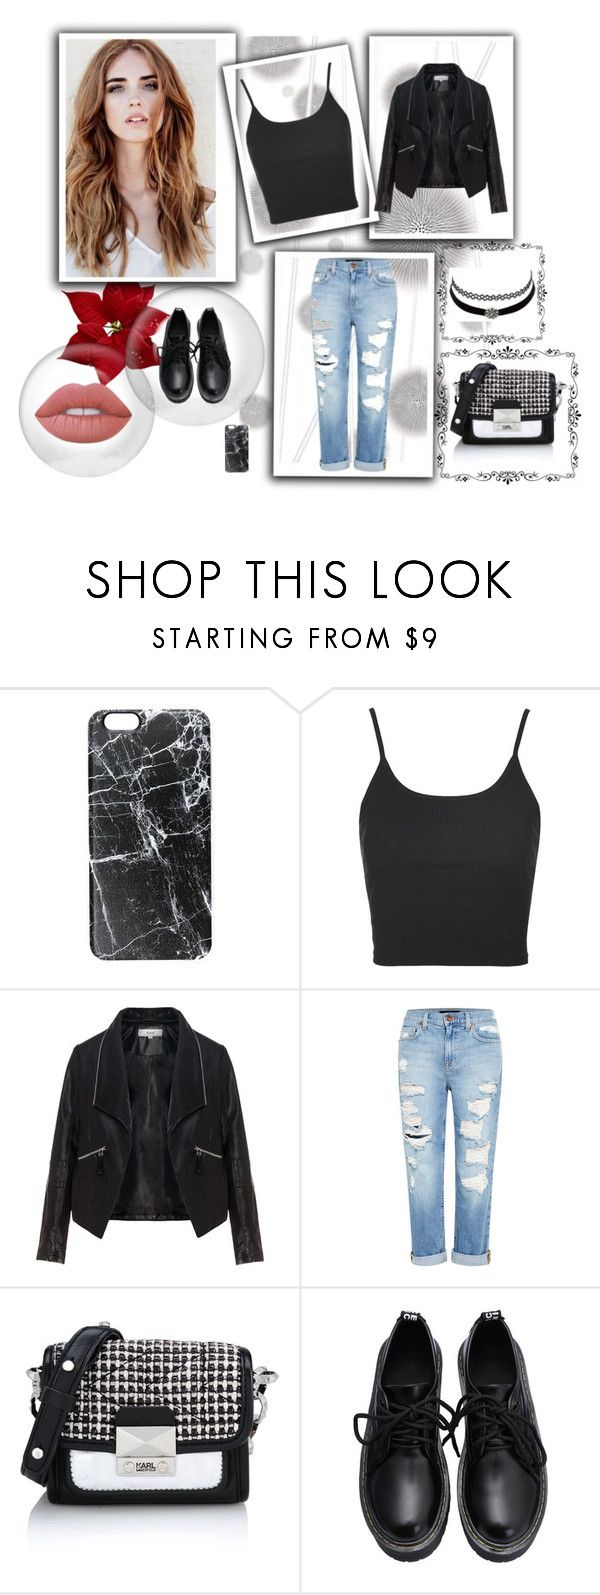 """""""Casual <3"""" by fey-loves-pizza on Polyvore featuring moda, Komar, Casetify, Topshop, Zizzi, Genetic Denim, Karl Lagerfeld, Charlotte Russe y Lime Crime"""